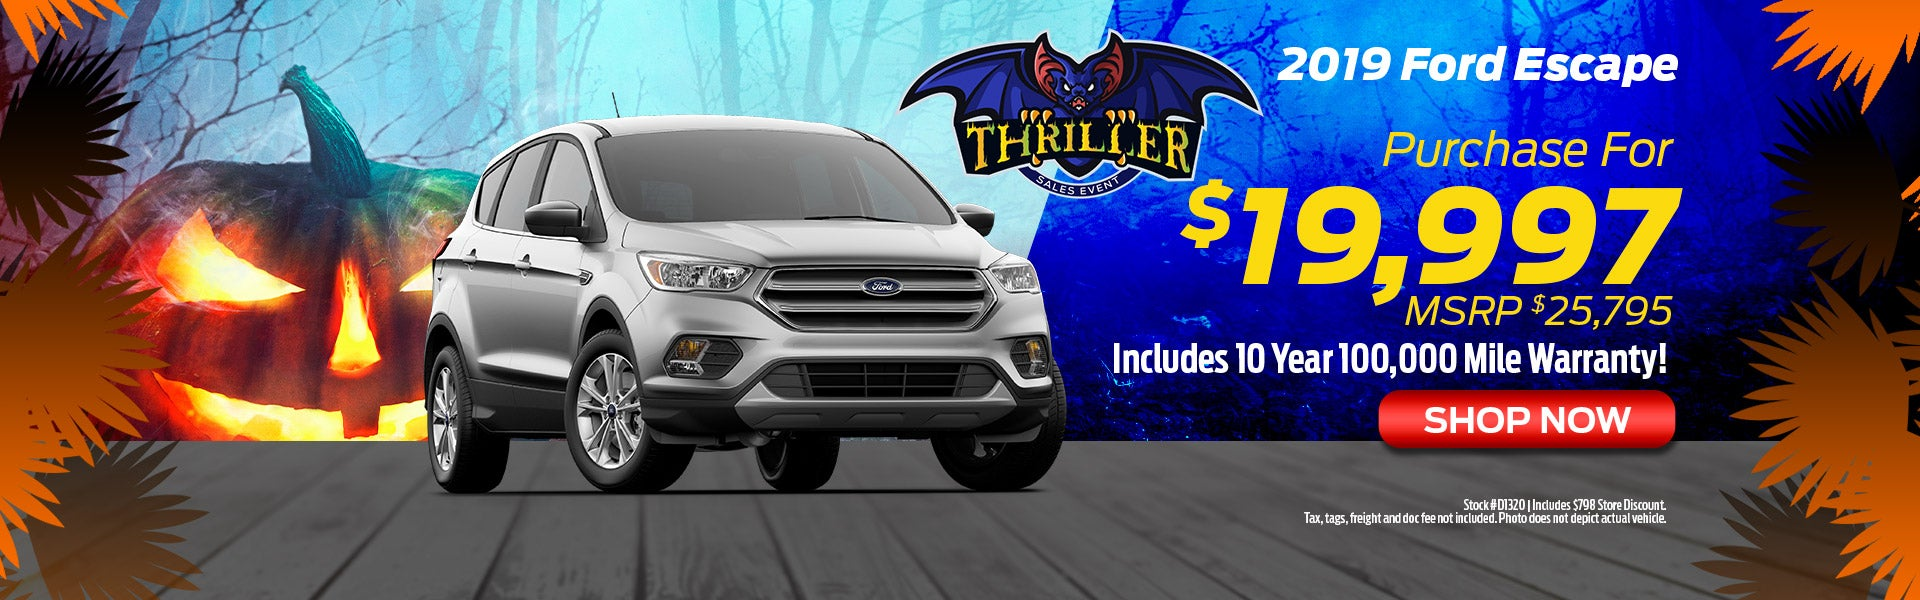 Used Cars Charleston Sc >> Local Ford Dealership Palmetto Ford New Ford Cars And Trucks